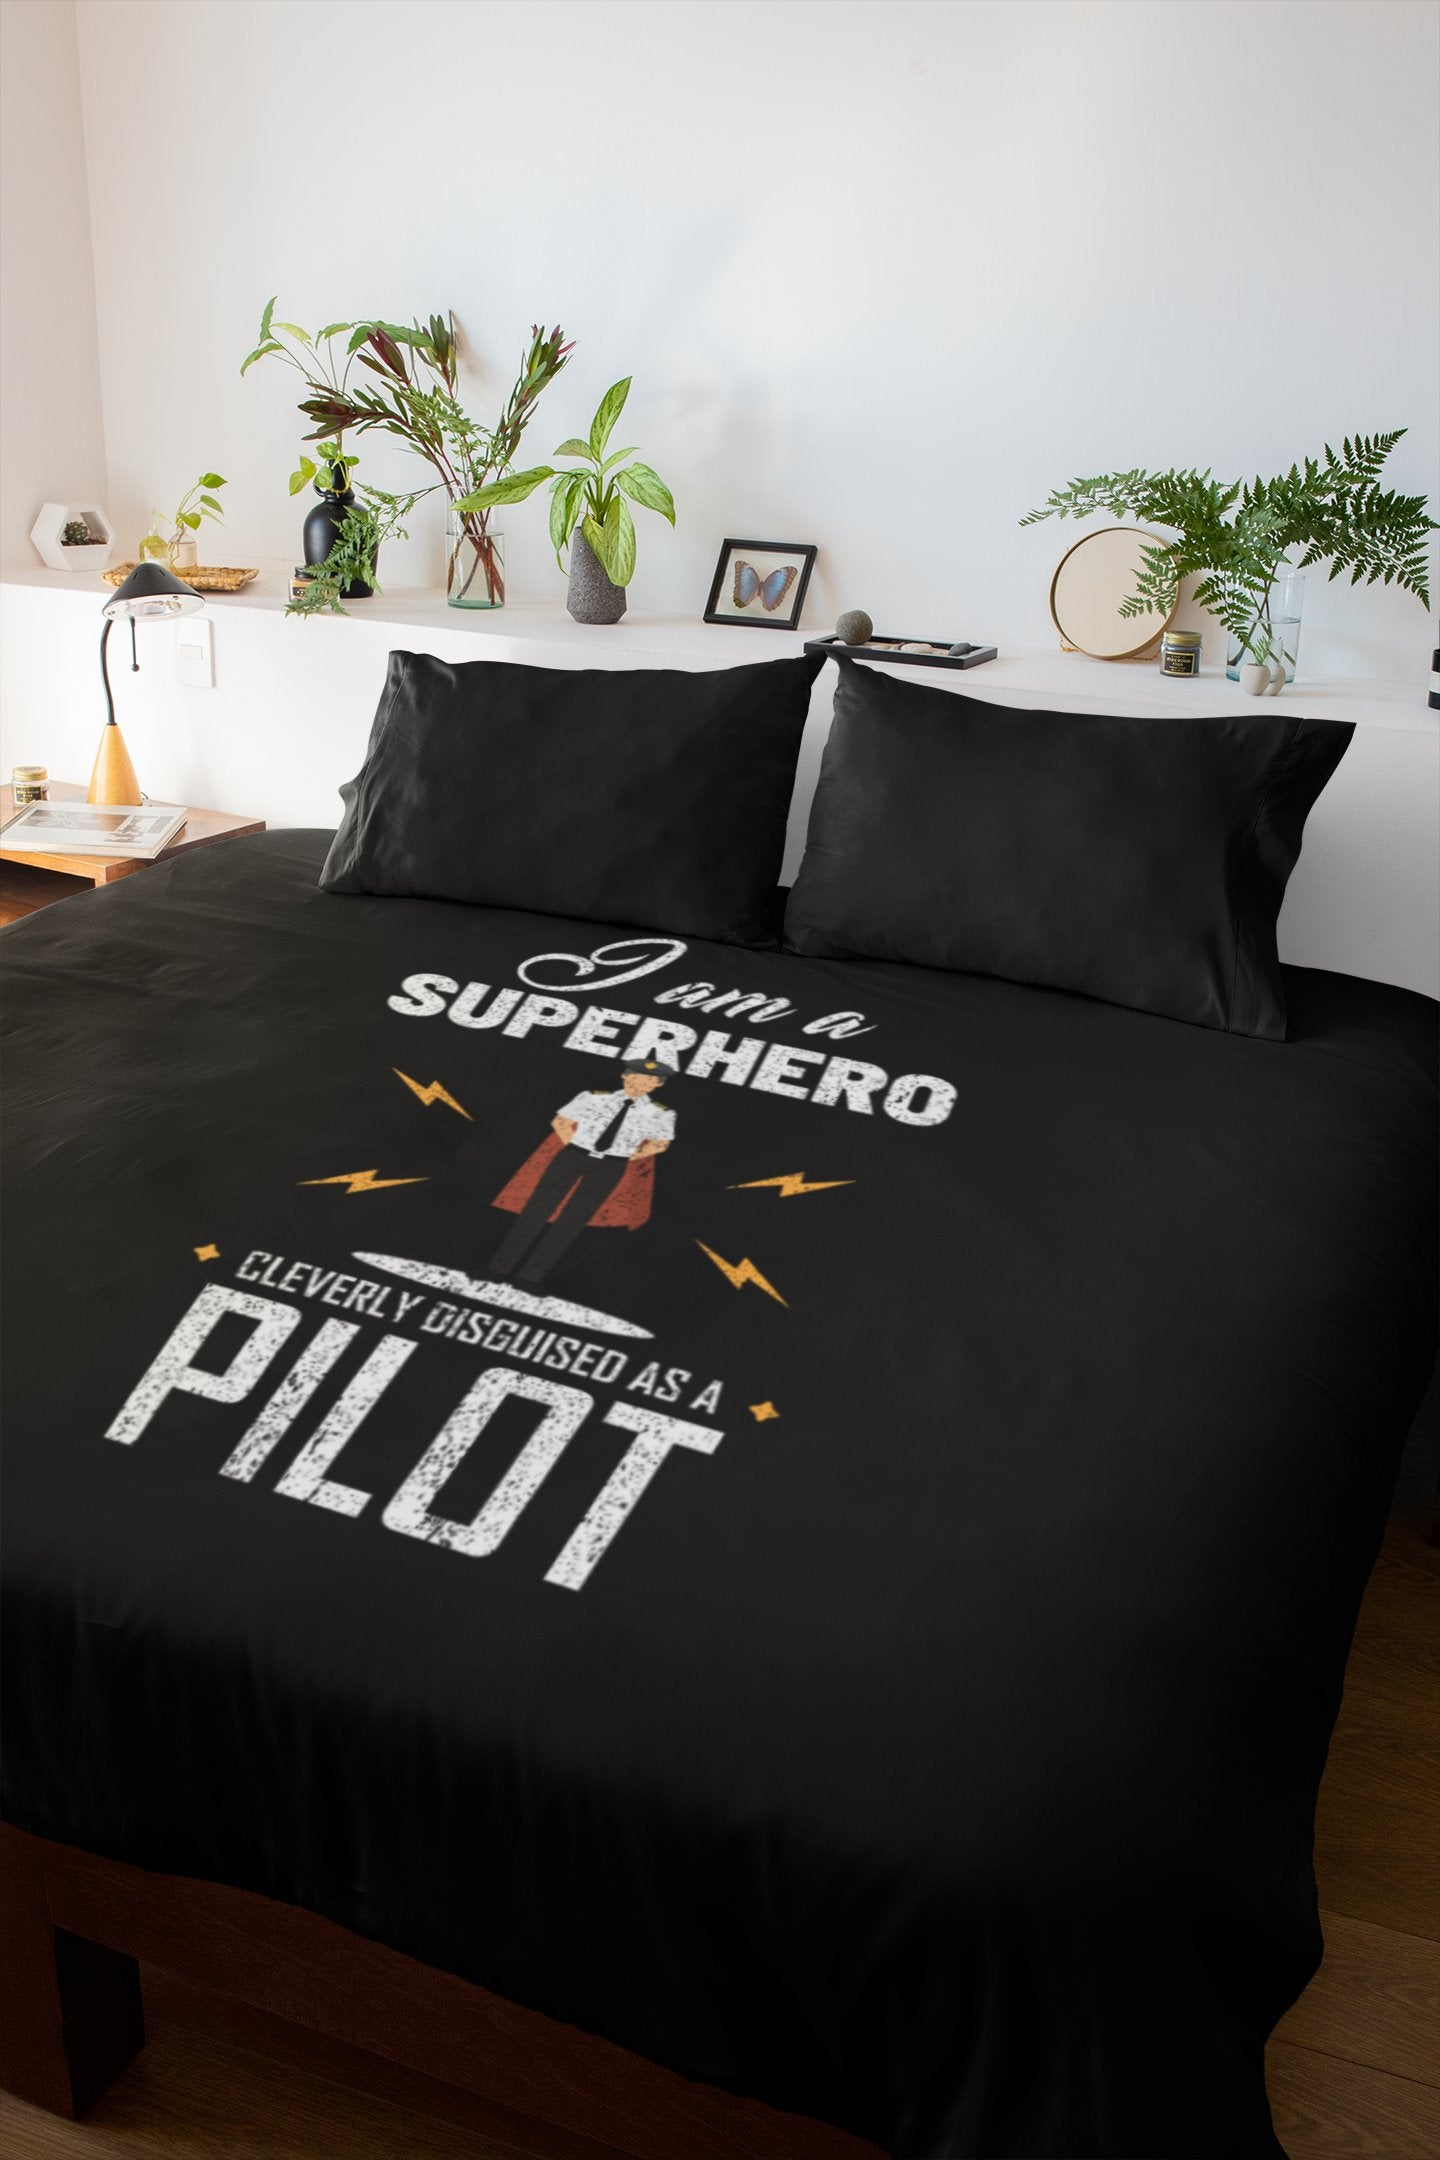 I Am A Superhero Cleverly Disguised As A Pilot Premium Blanket